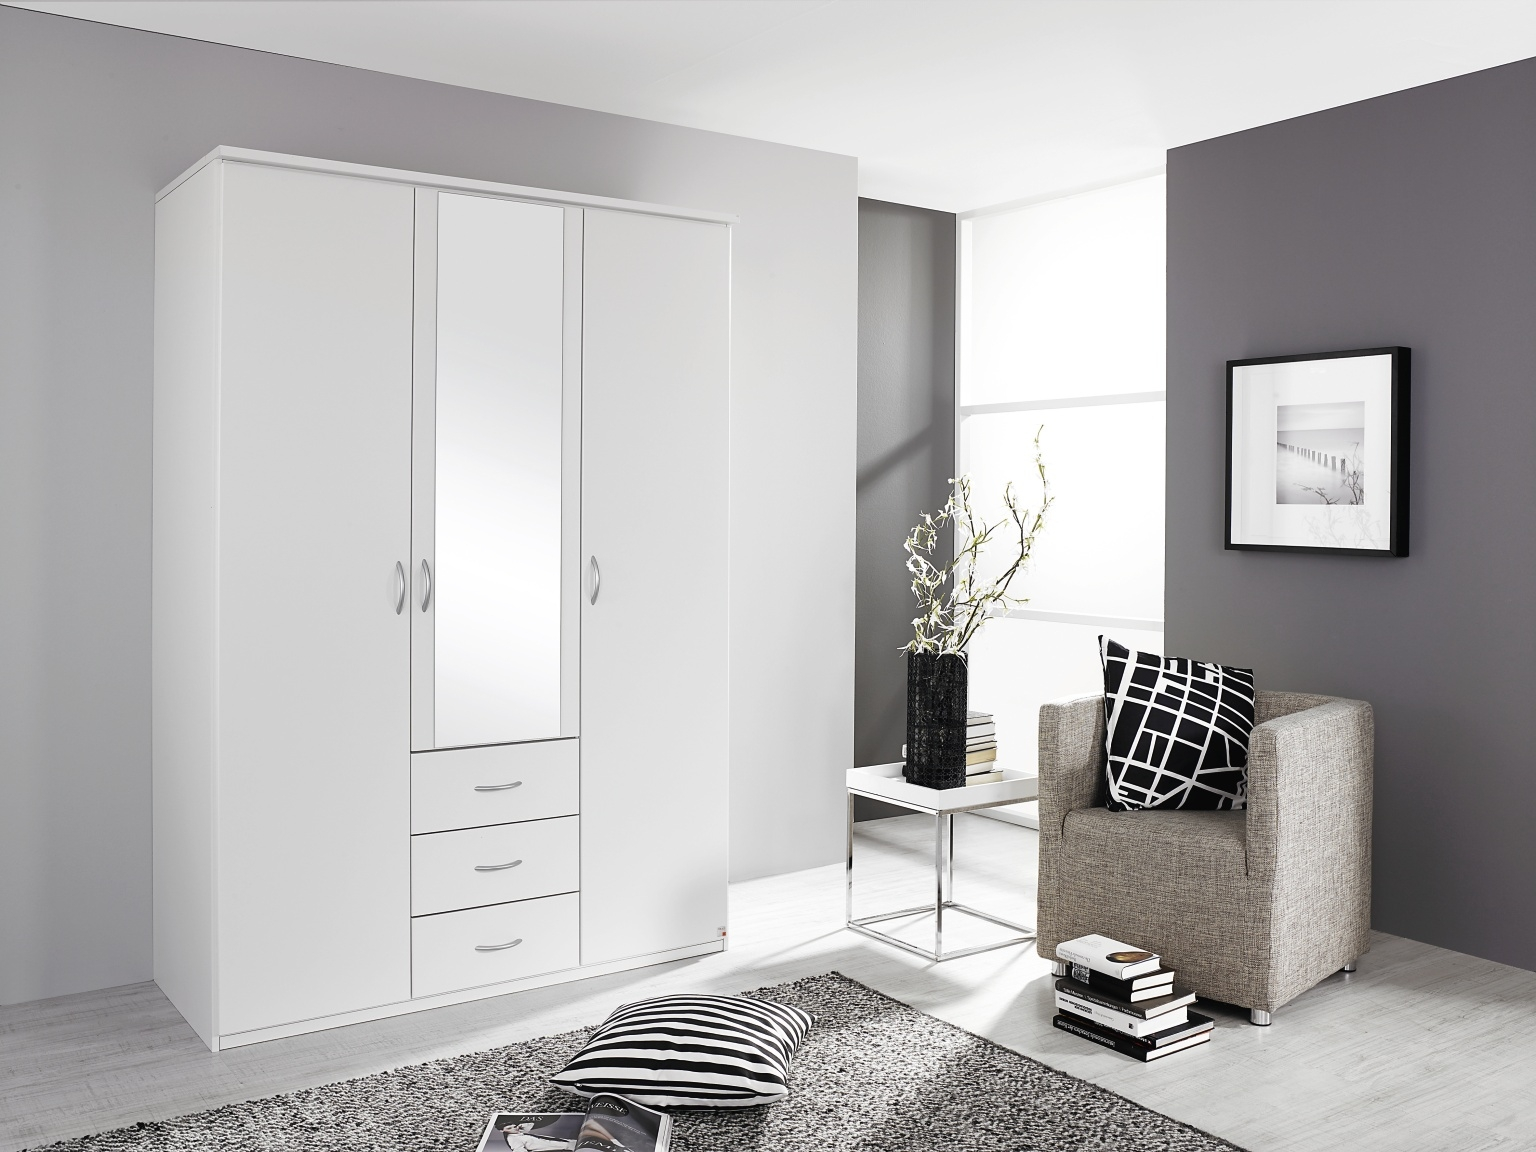 Rauch Blitz Alpine White 3 Door Wardrobe with 1 Mirror